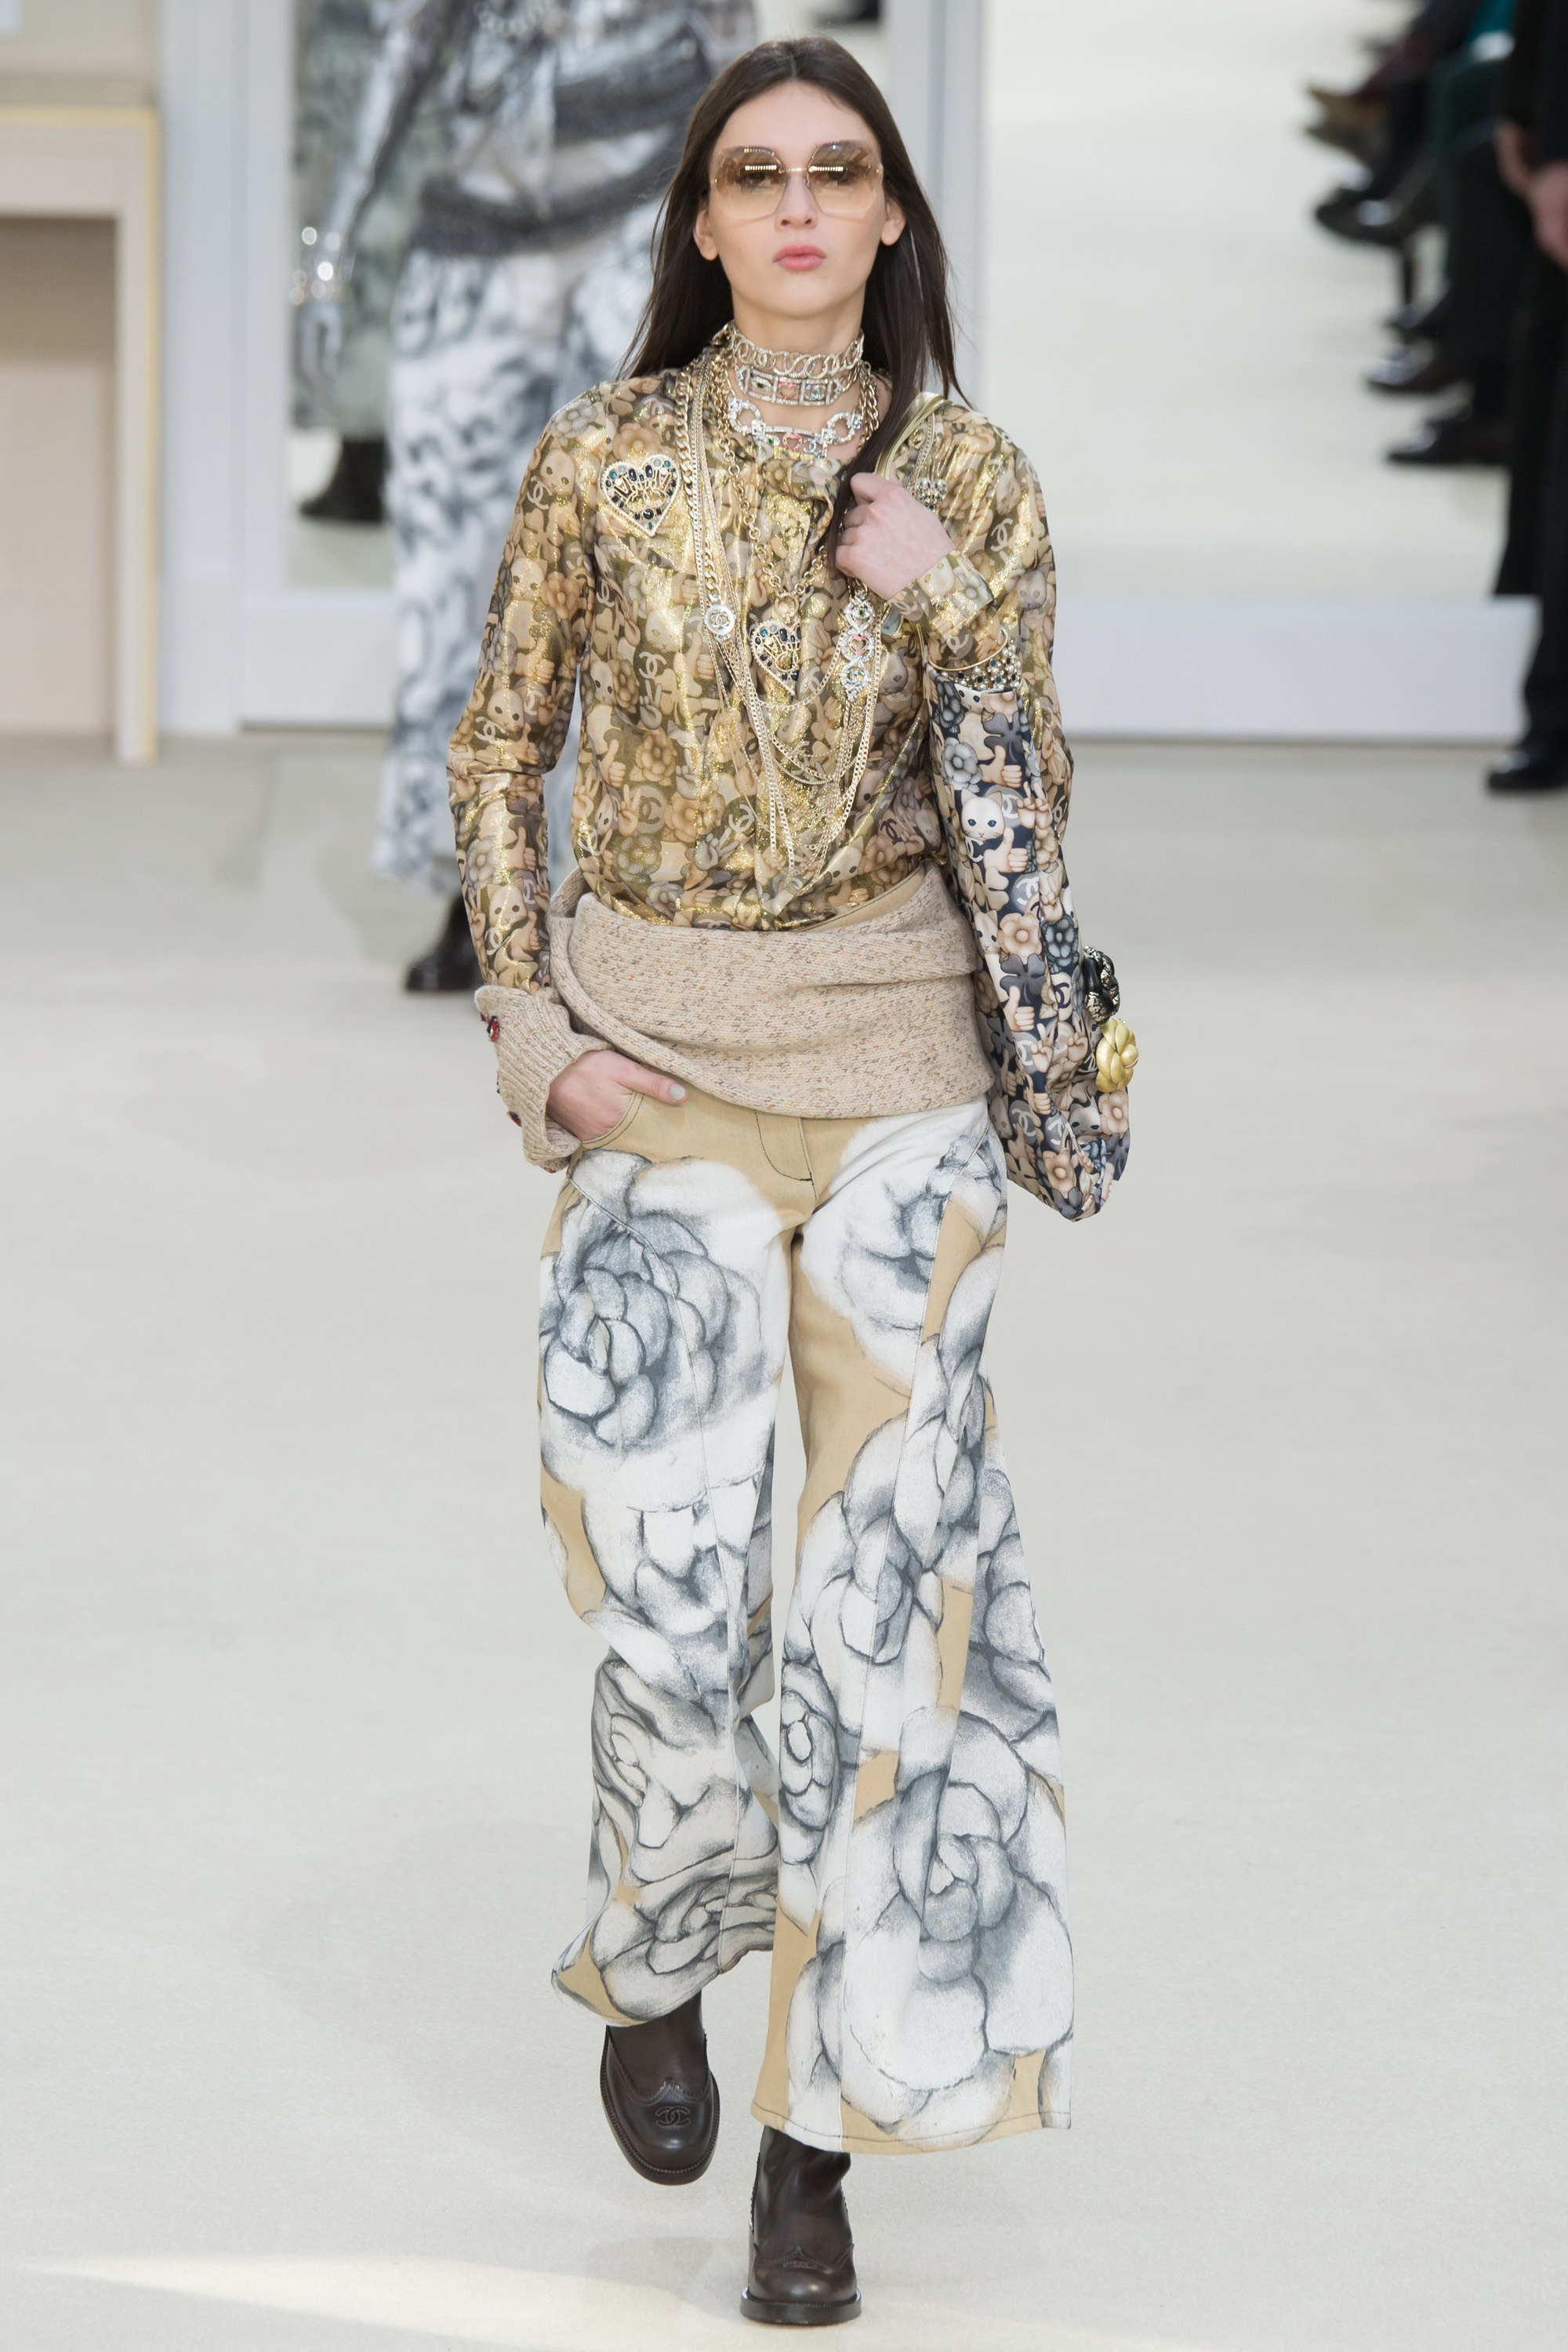 c4f0a101c4d Chanel Fall 2016 RTW - Paris Fashion Week - Fashionsizzle